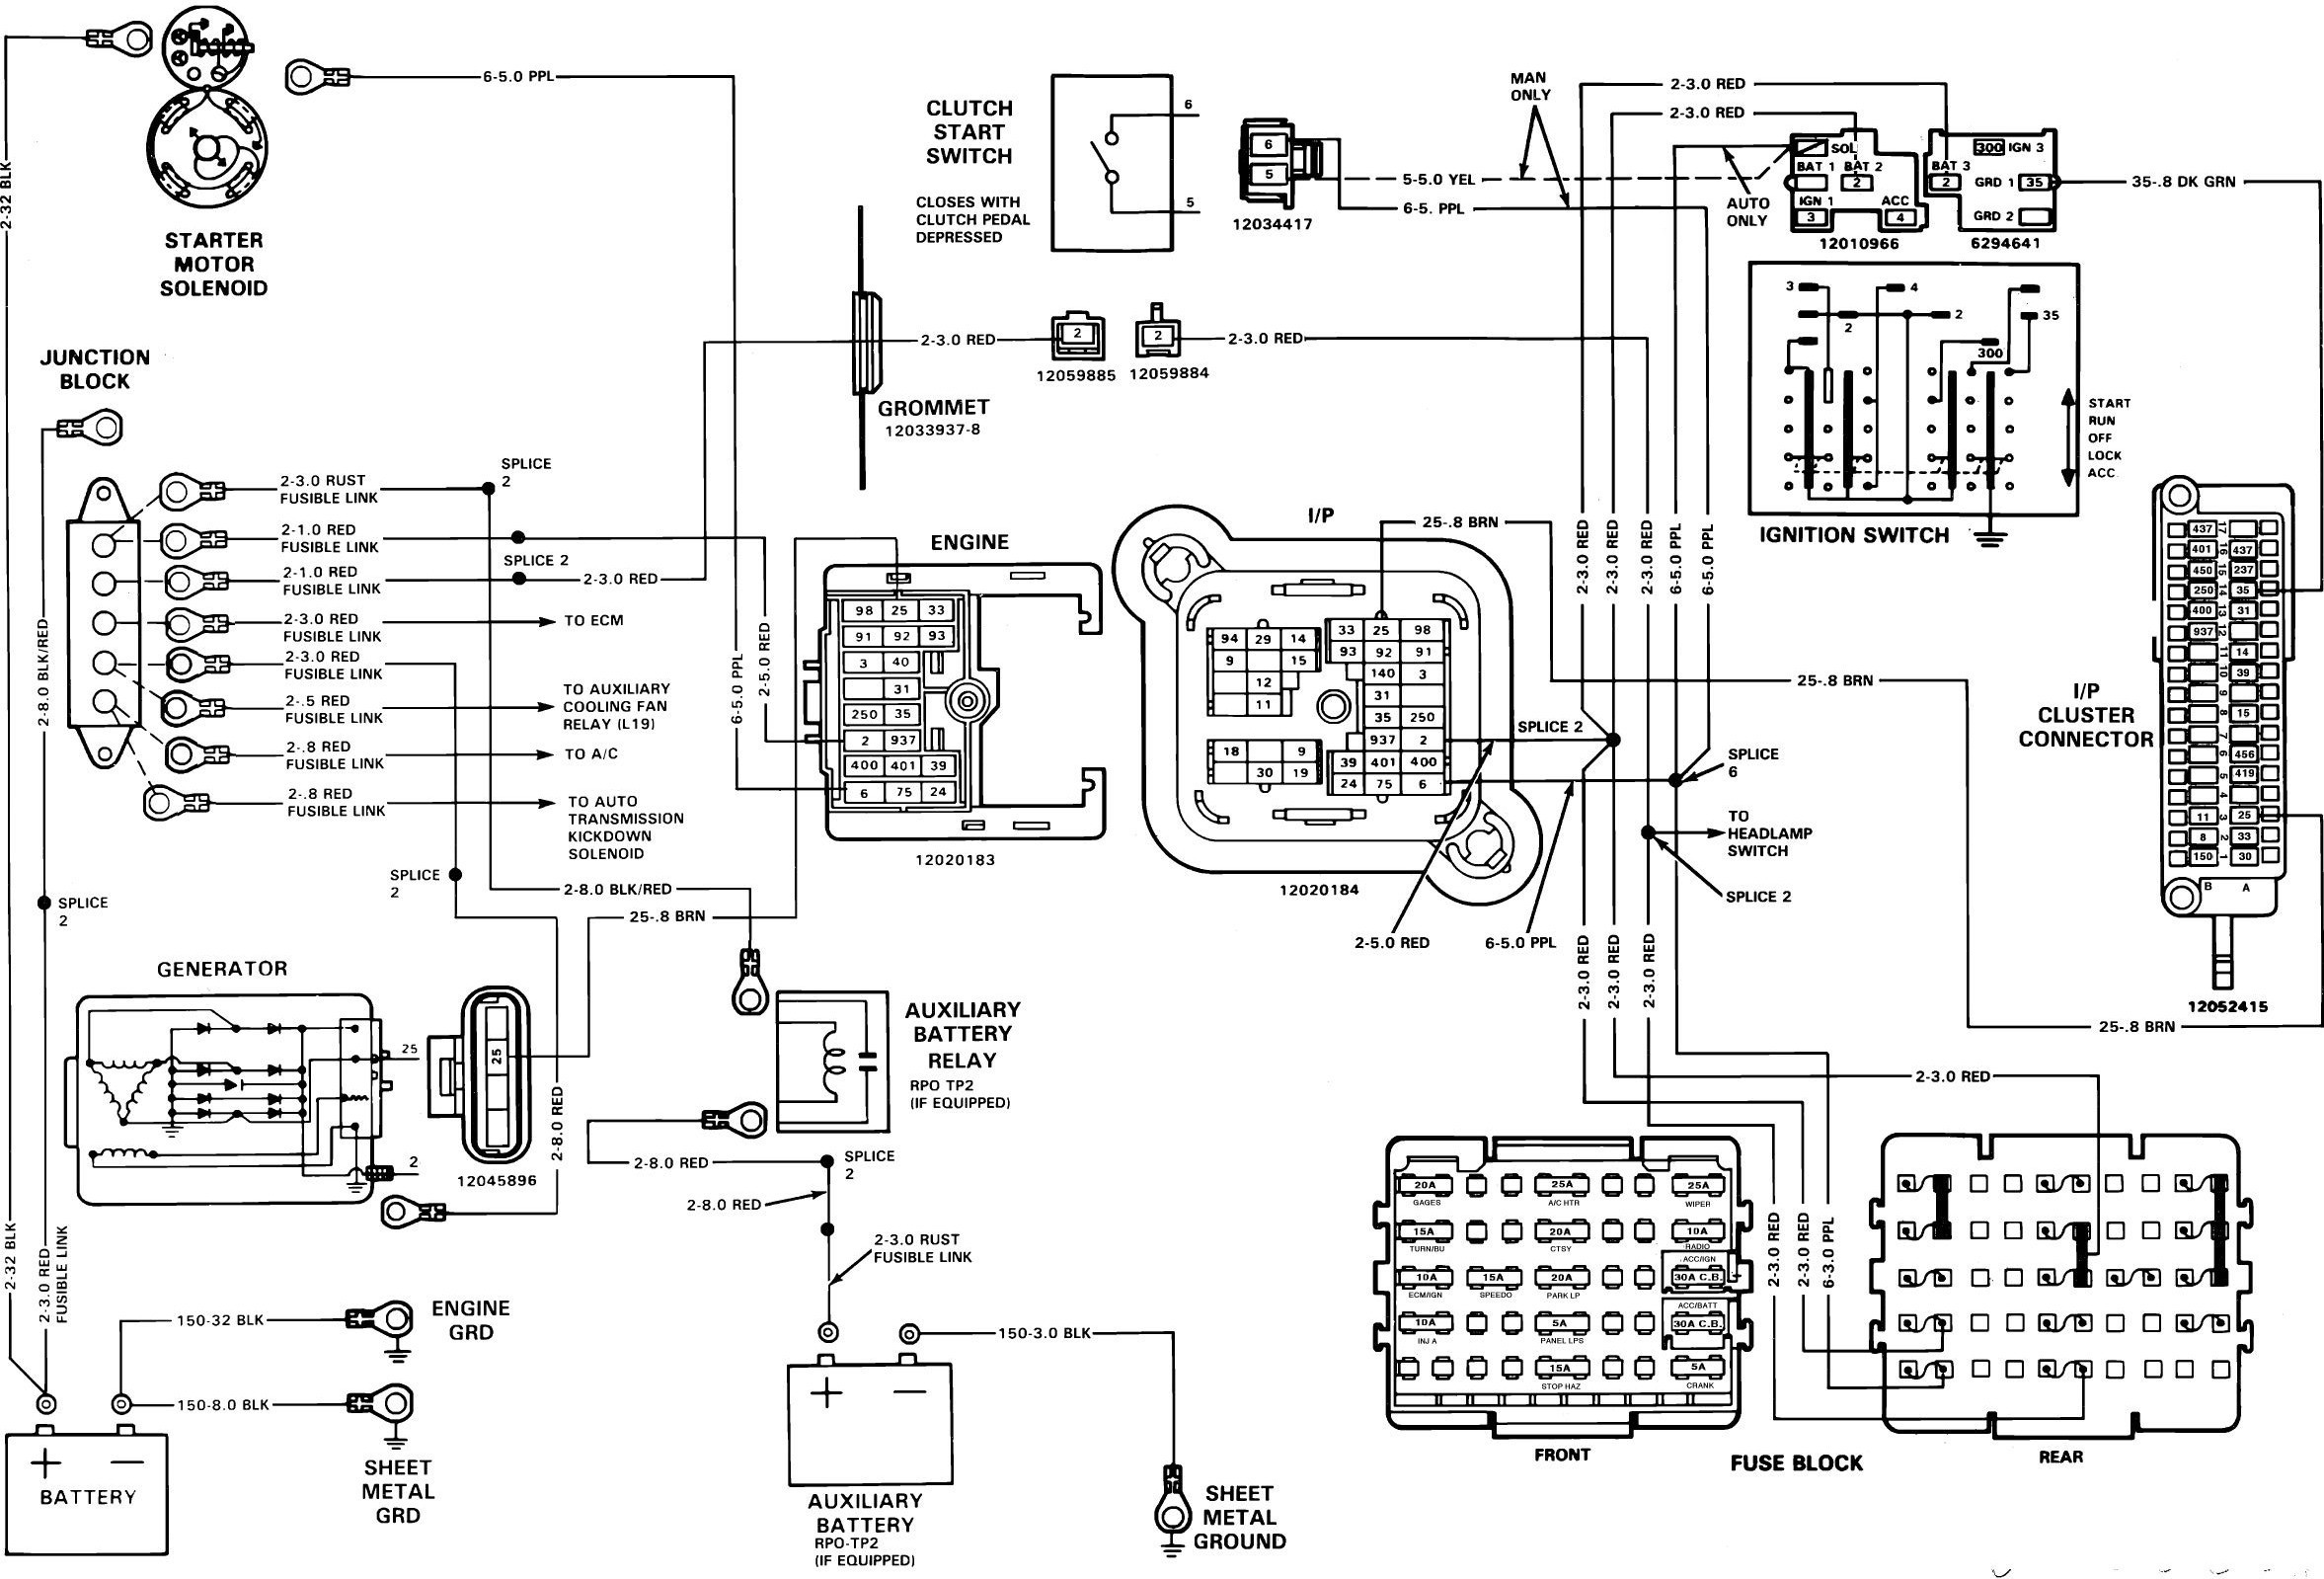 Fuse Box Diagram For A 1989 Chevy K2500 4x4 Diagram Base Website K2500 4x4  - USE-CASEDIAGRAM.MOTIFS-ET-ROBES-COUSUES.FRMotifs et Robes Cousues